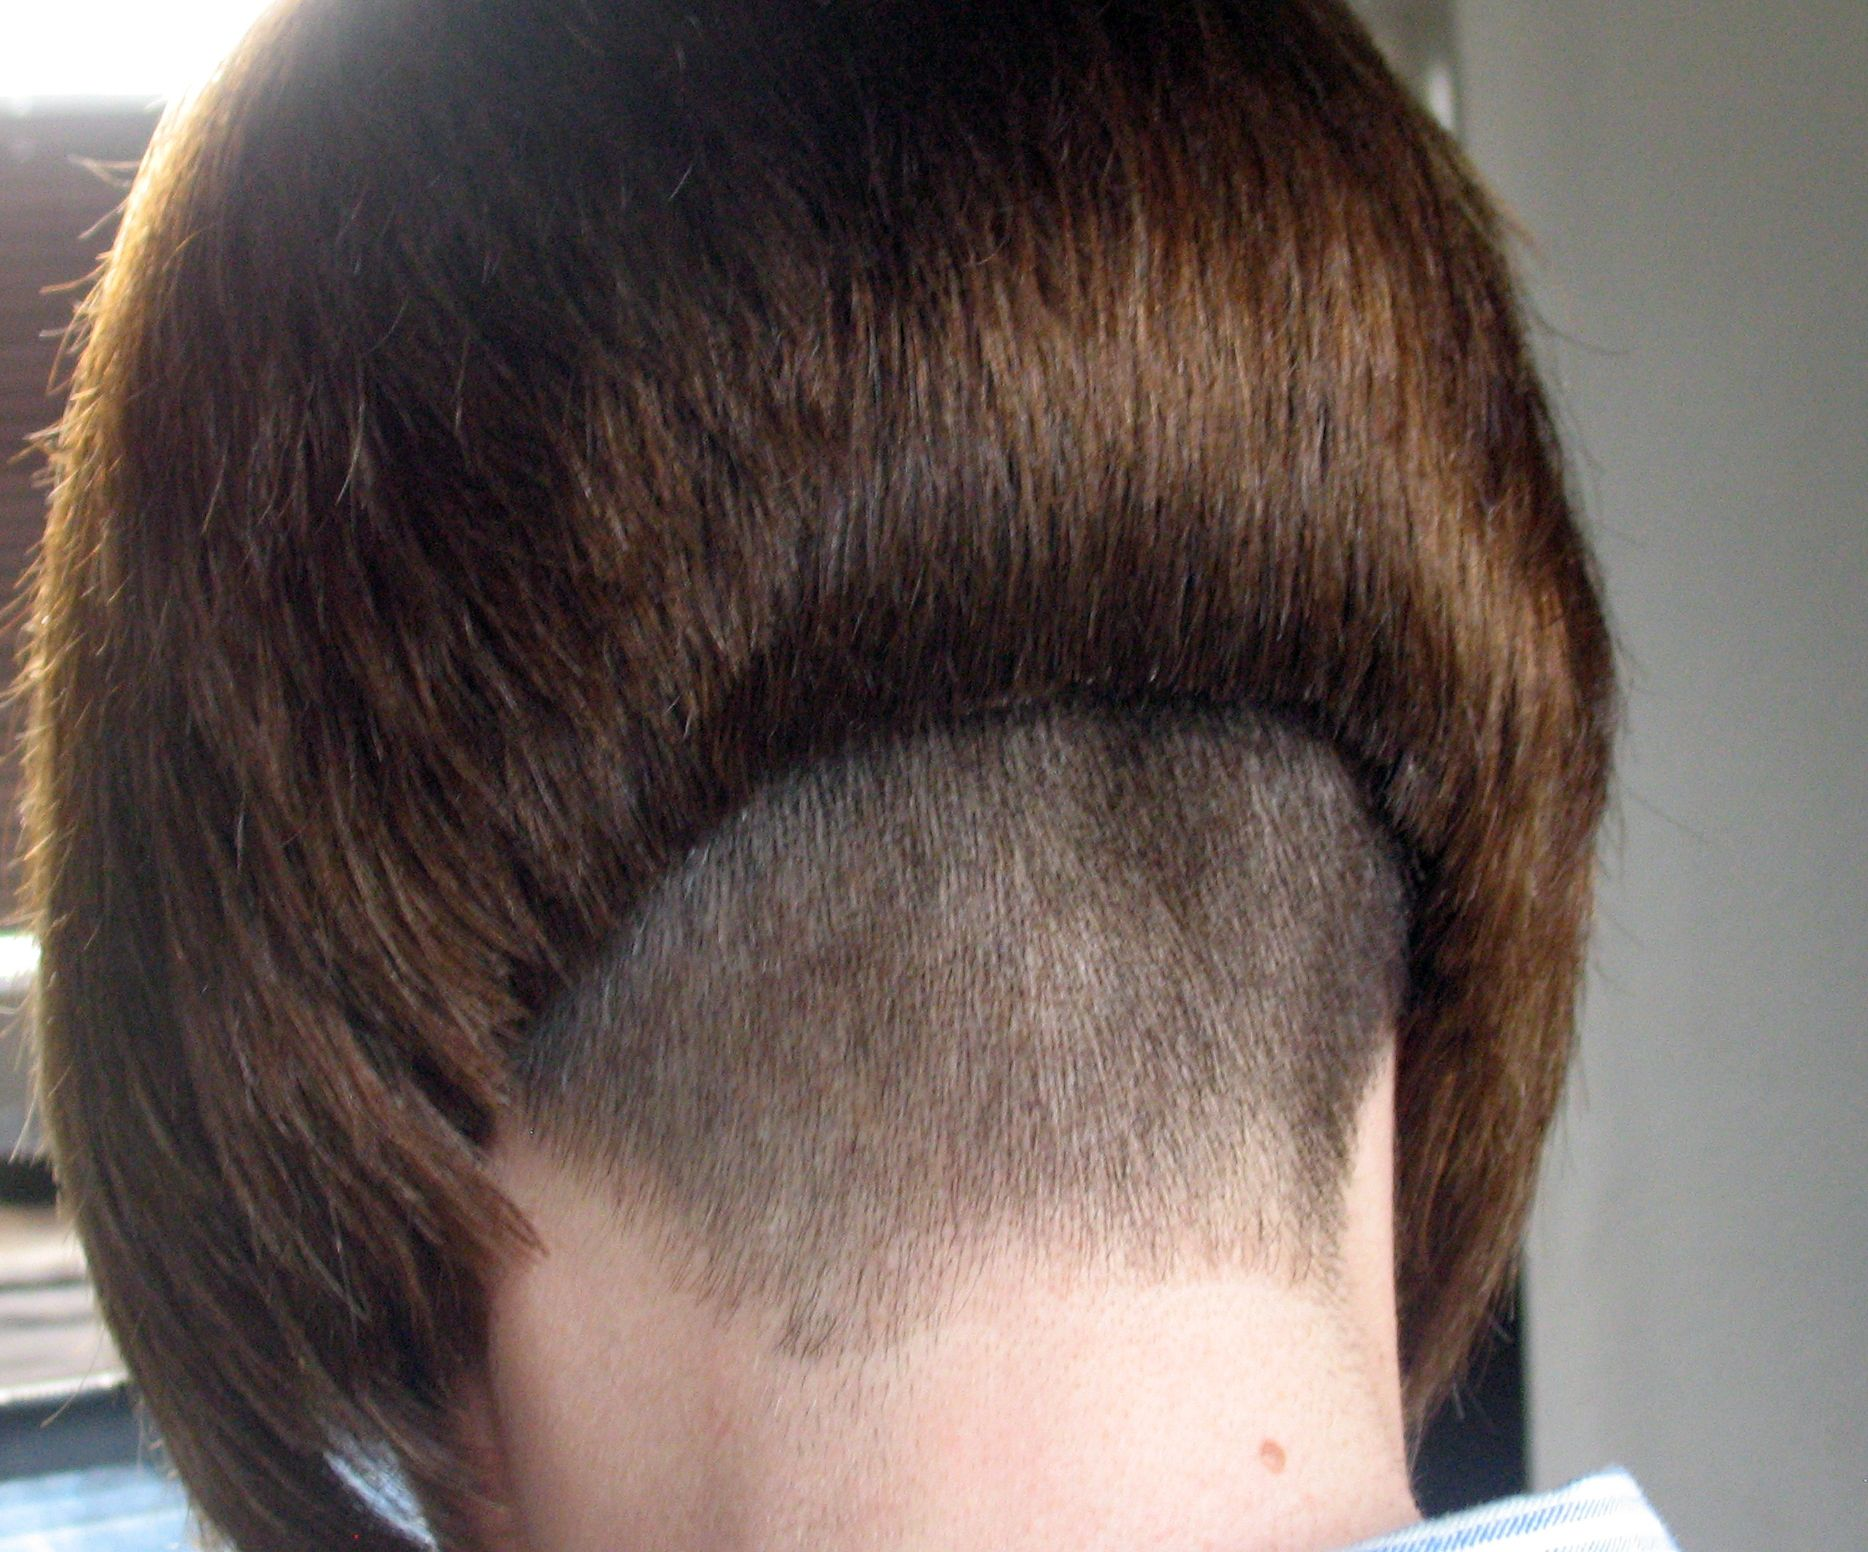 Super Mrs Cb From The Coolbobs Com Website Hair Undercuts Short Hairstyles For Black Women Fulllsitofus